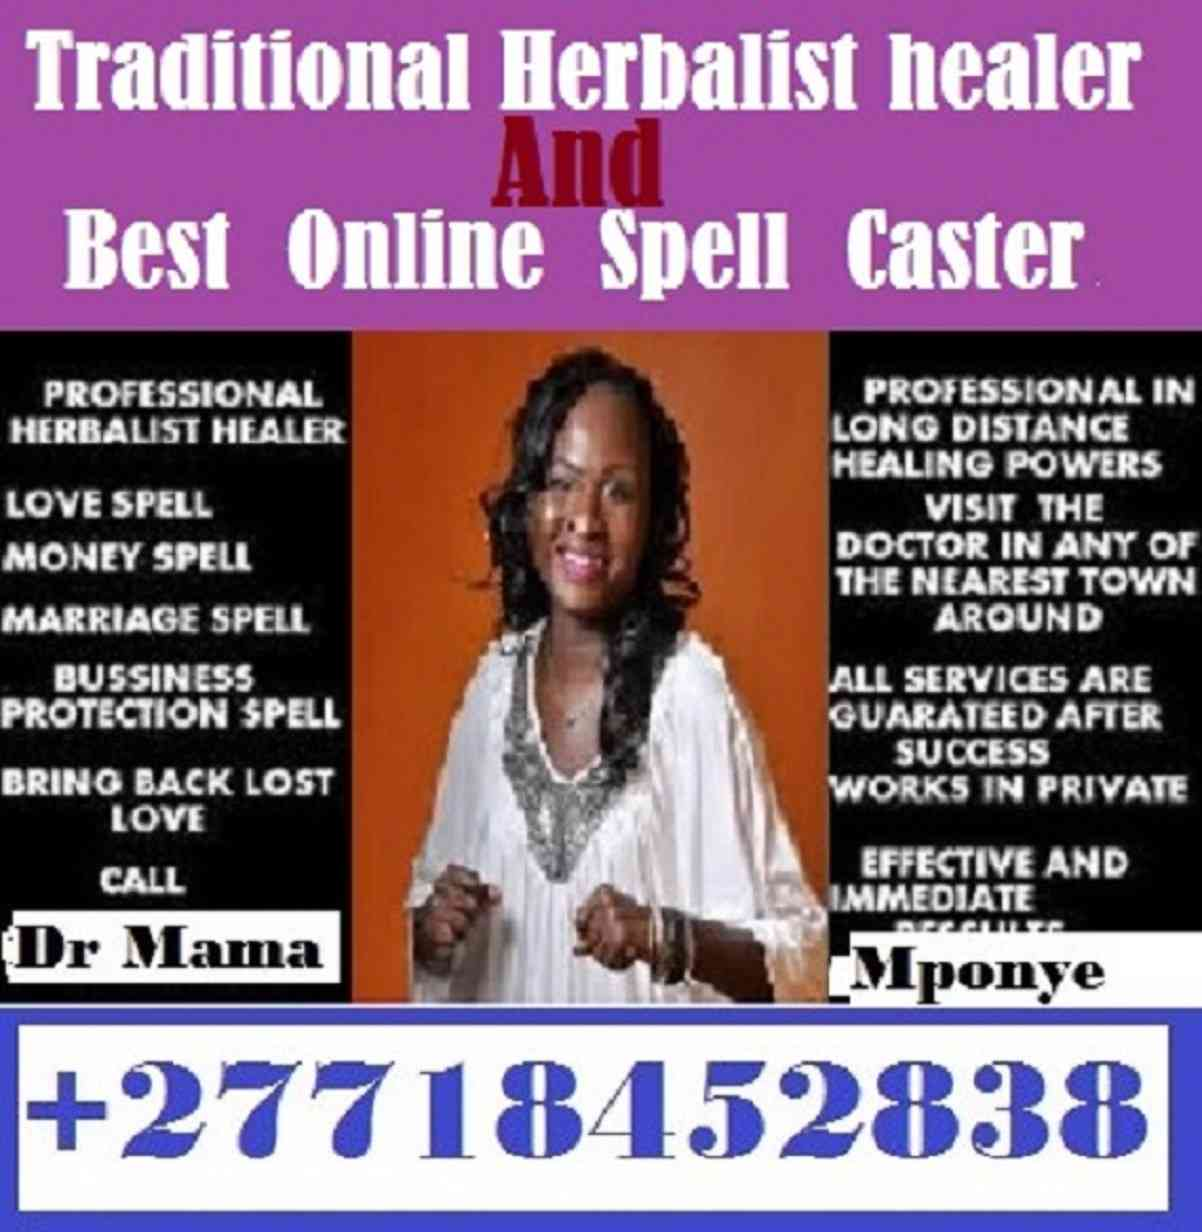 Ballantrae : Find the cure for HIV AIDS 27718452838 Natural Herbal